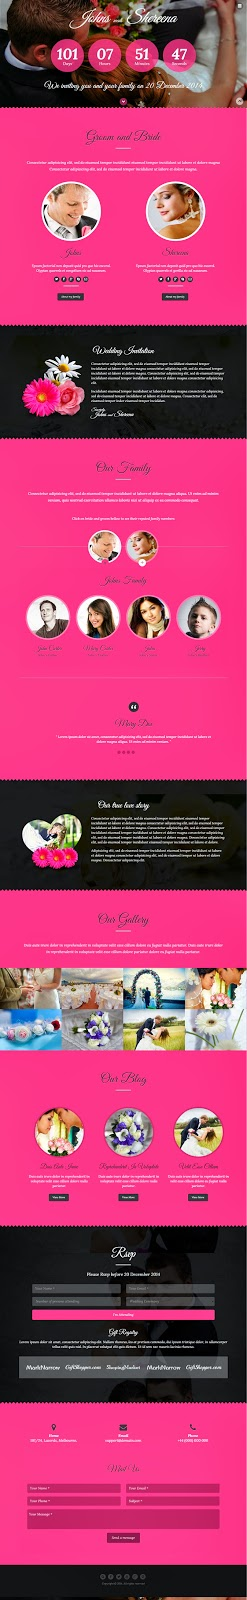 best wedding website theme